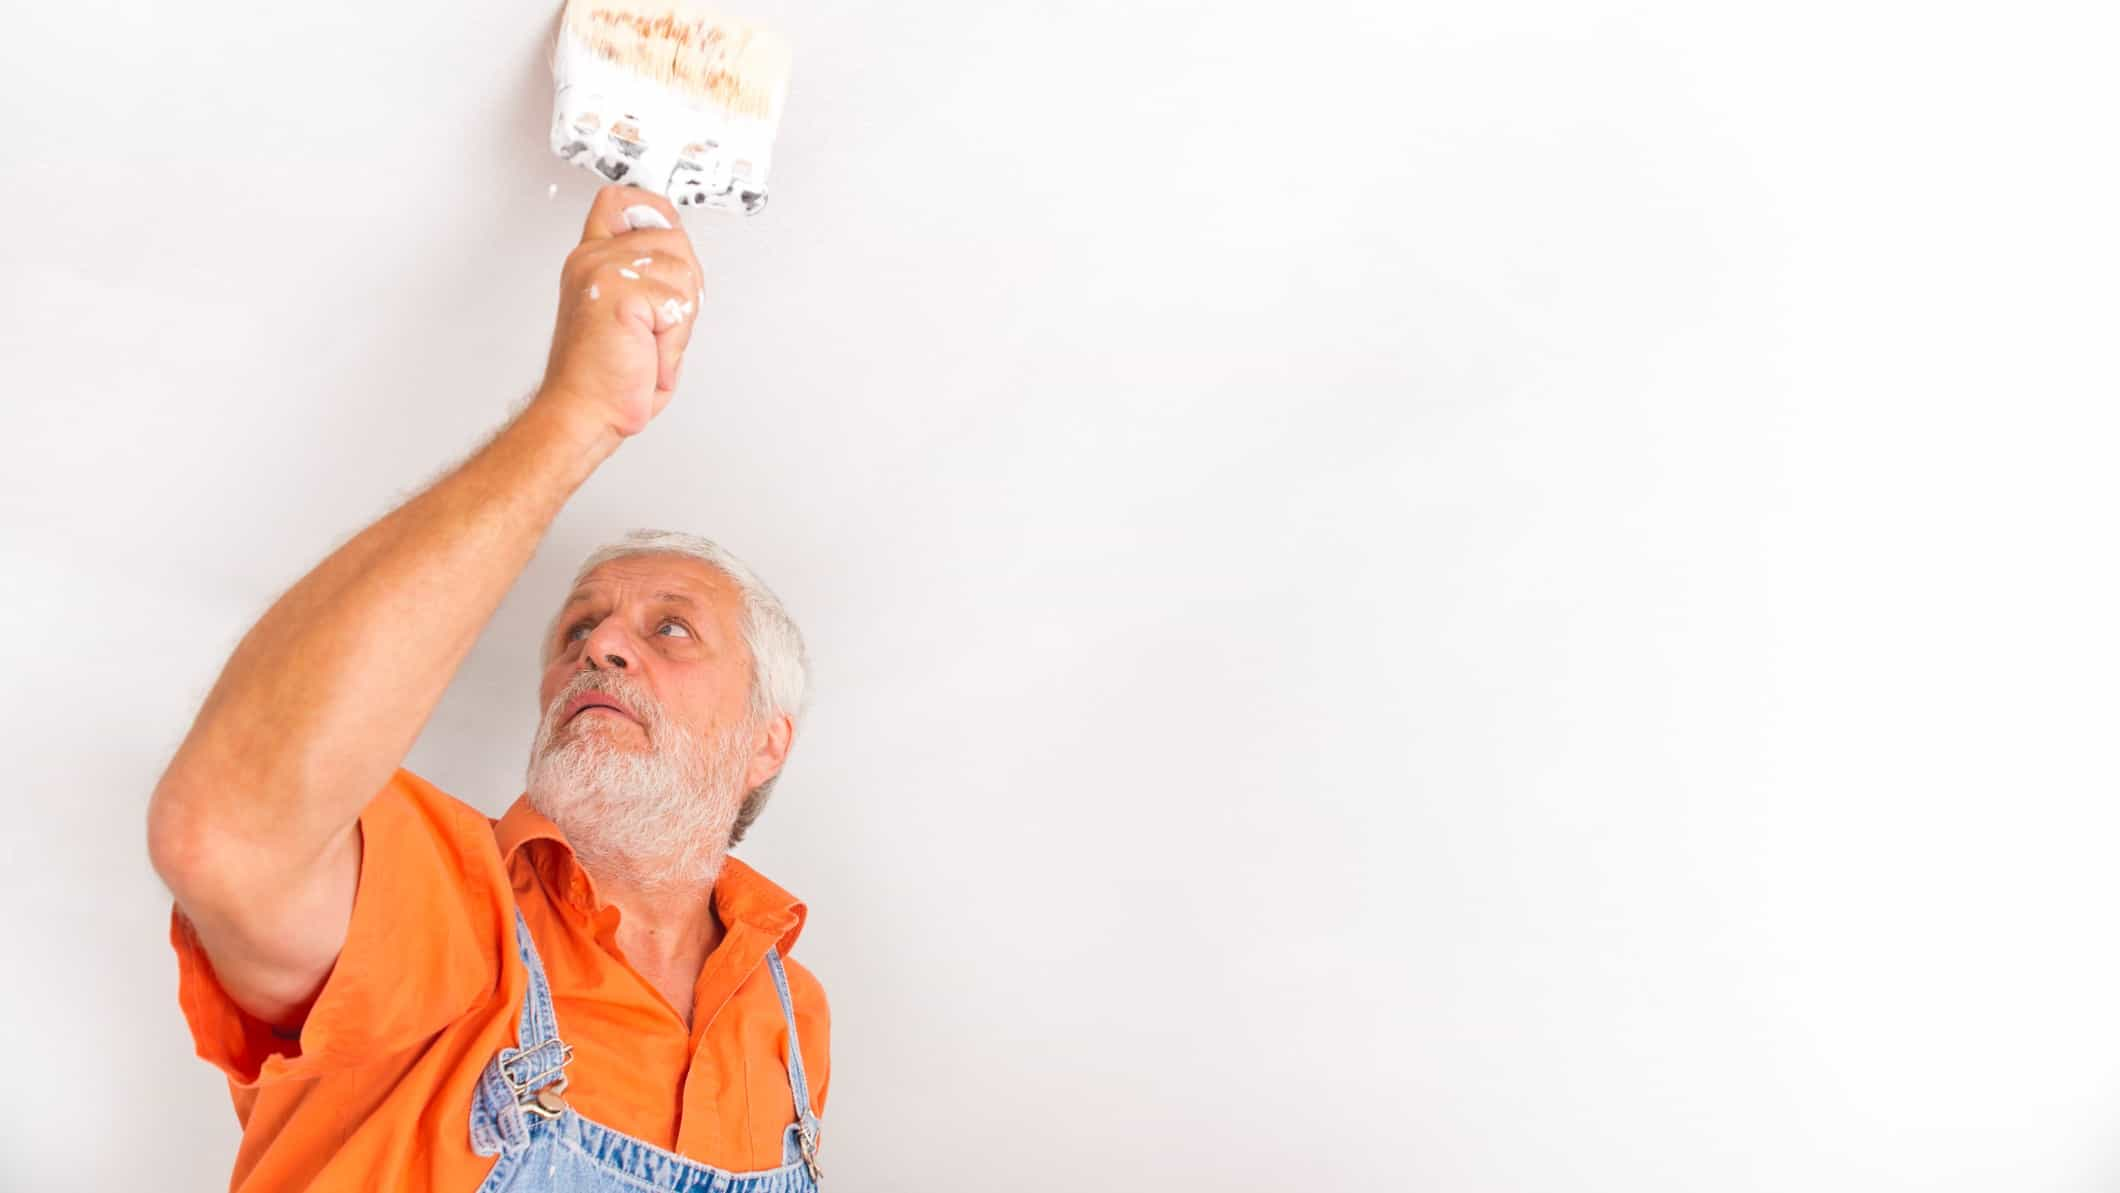 An older man in an orange shirt paints the ceiling of a house.